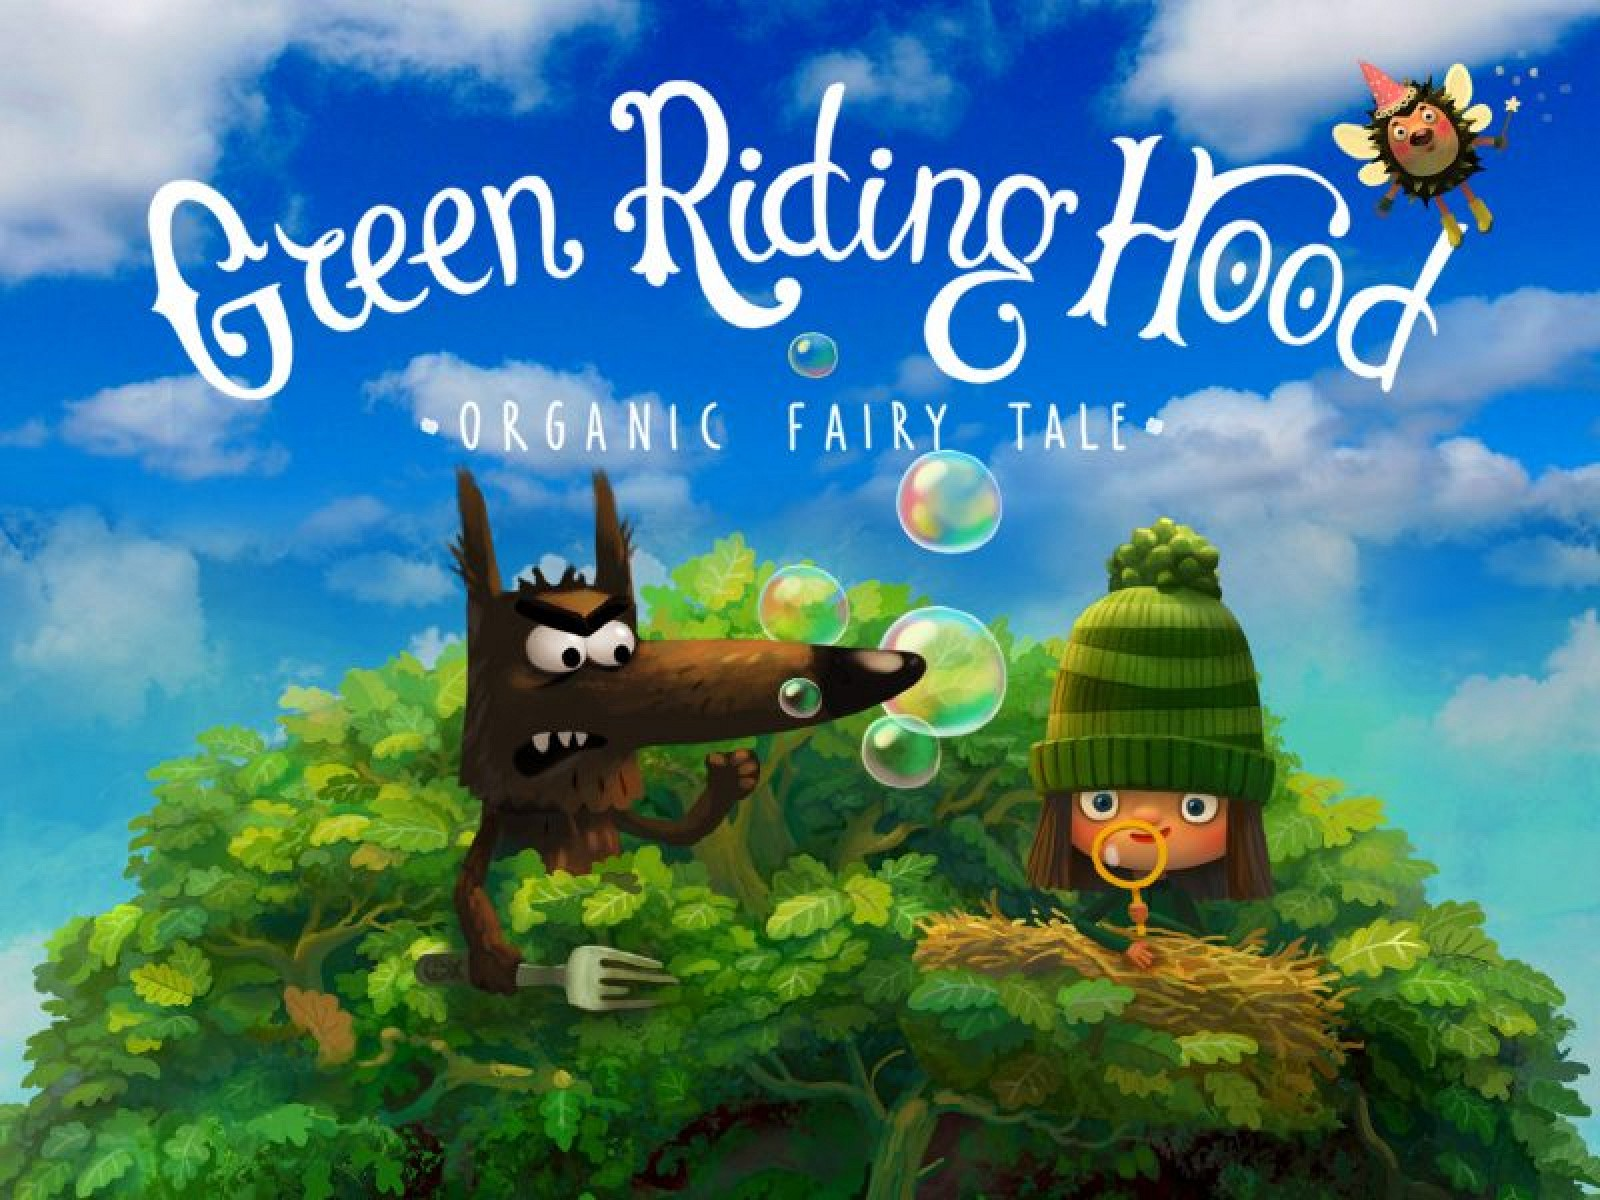 Children's Organic Storybook 'Green Riding Hood' is Apple's Free App of the Week